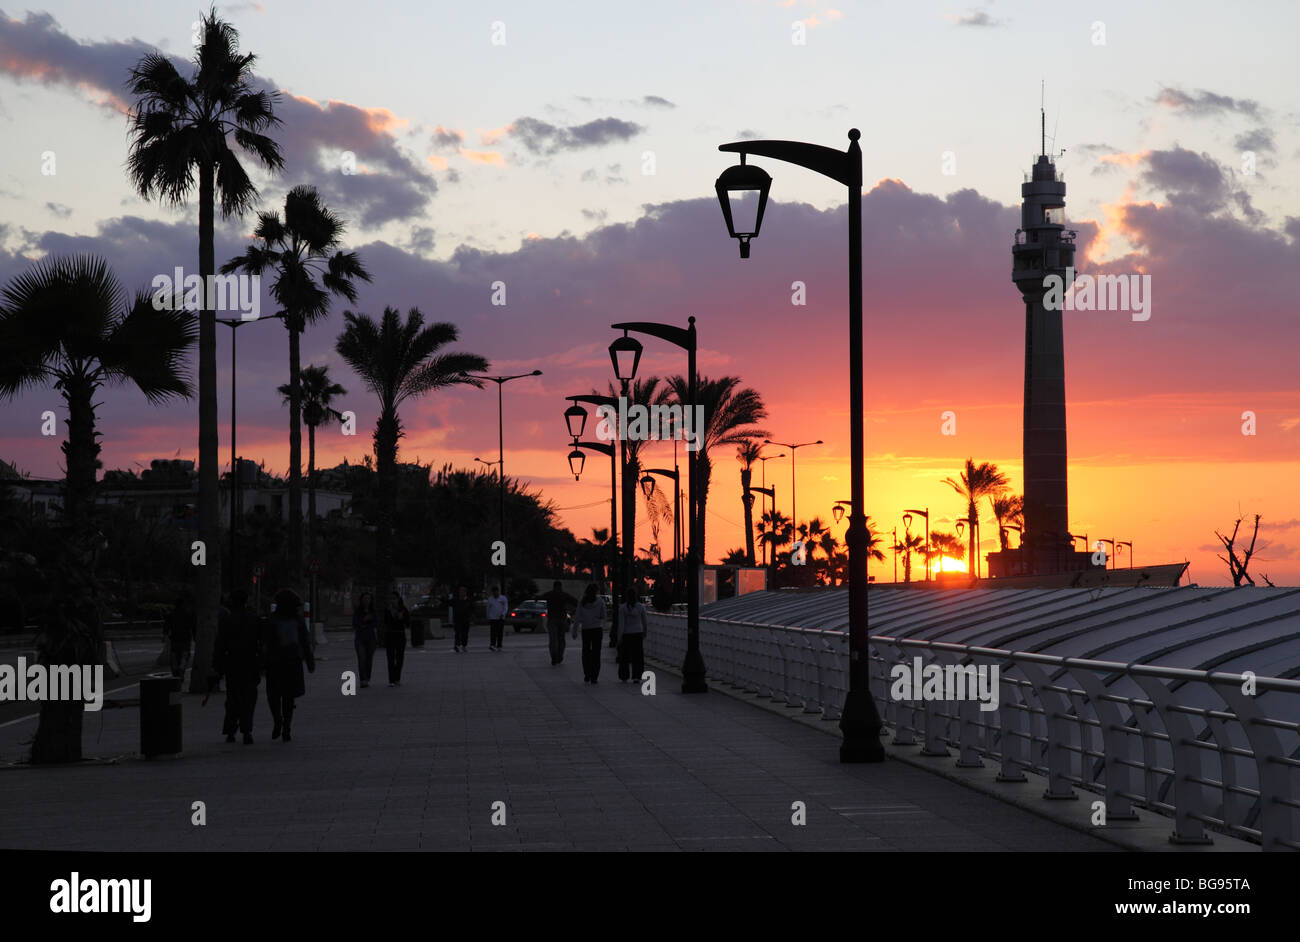 Corniche Beirut Liban libanaise arabe Moyen Orient Photo Stock